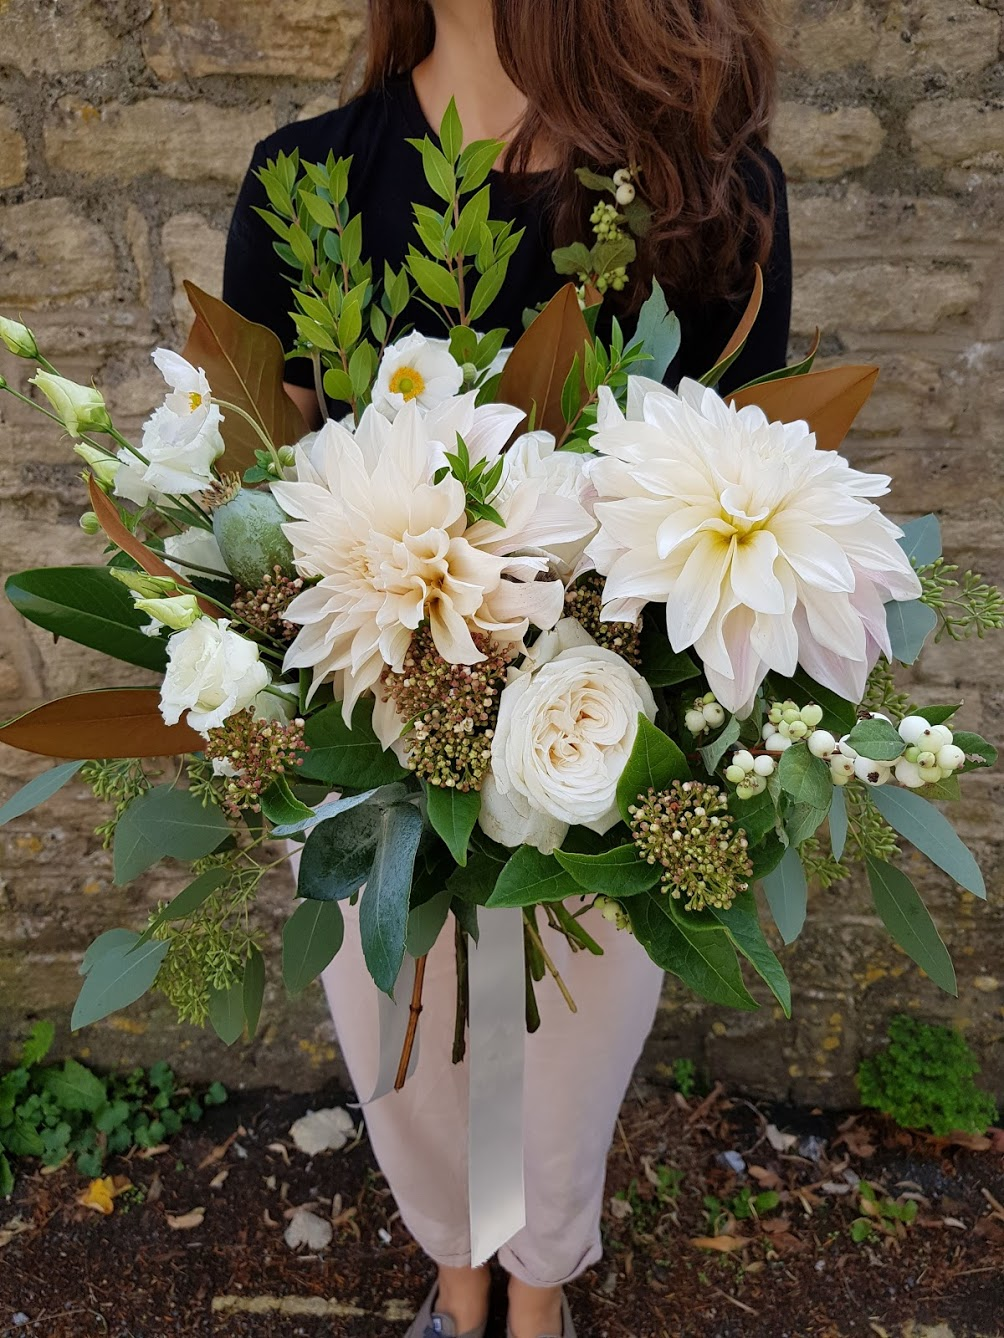 Big dahlia bouquet